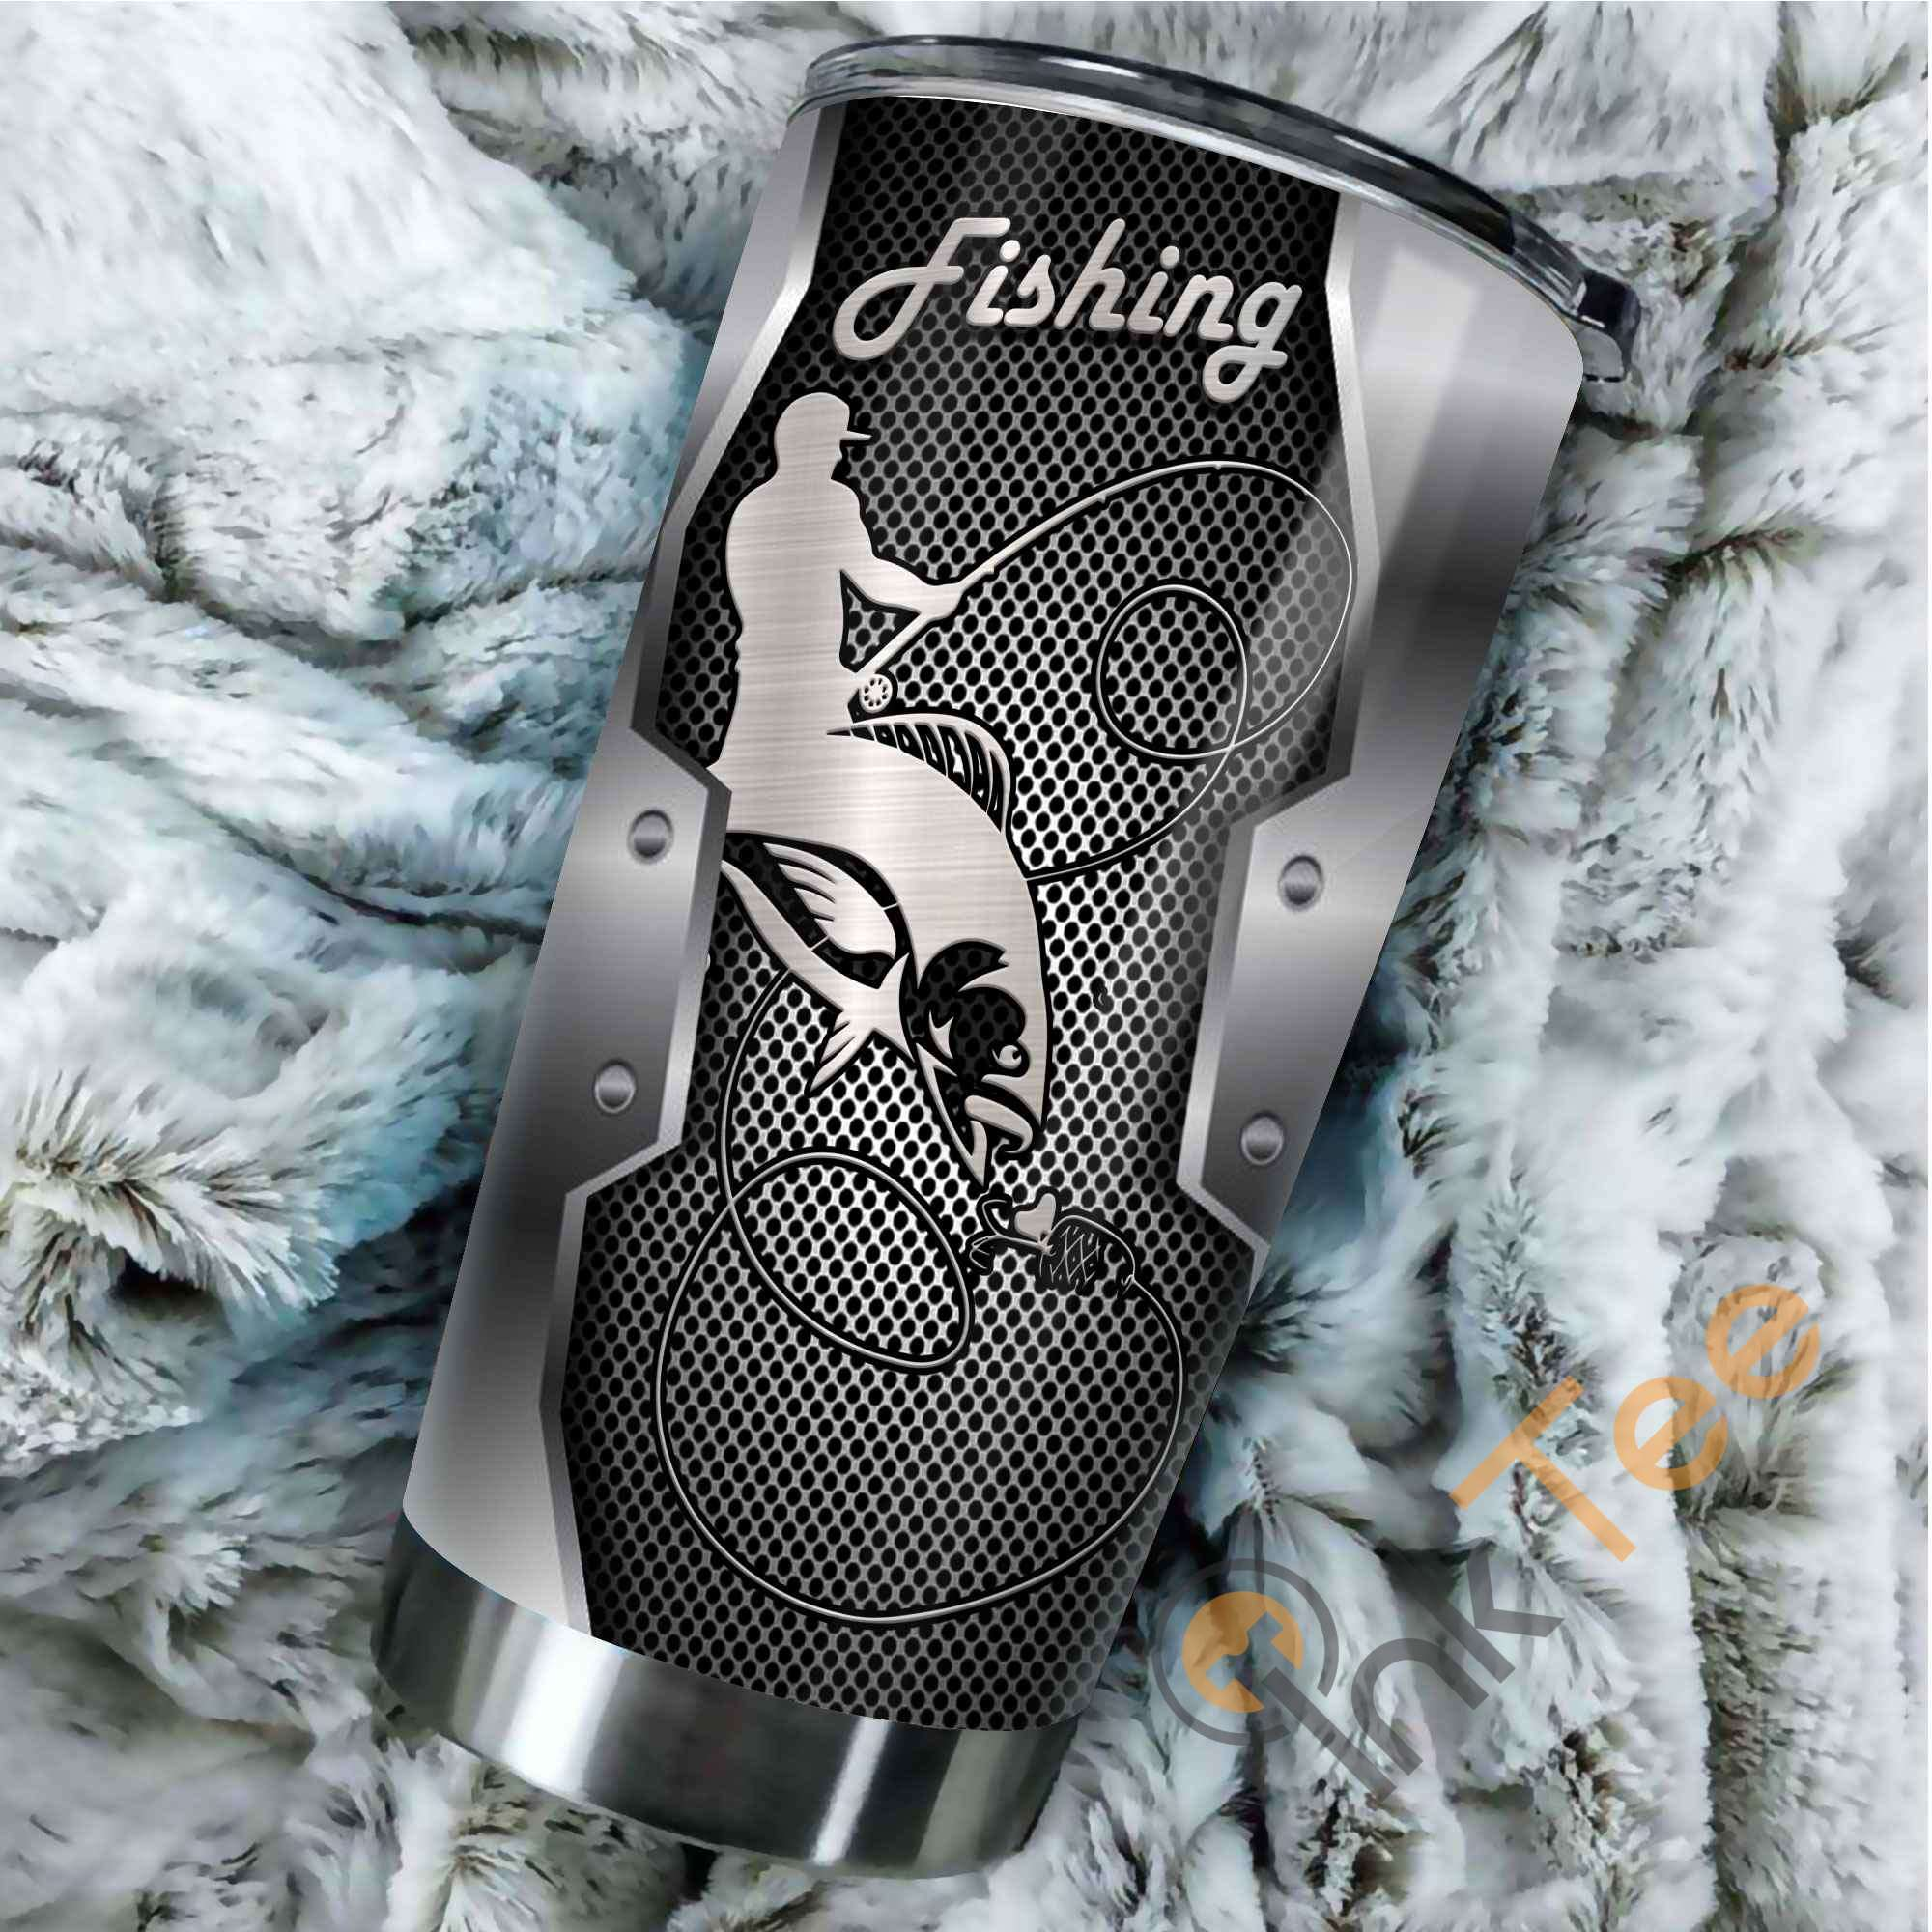 Fishing Metal Stainless Steel Tumbler